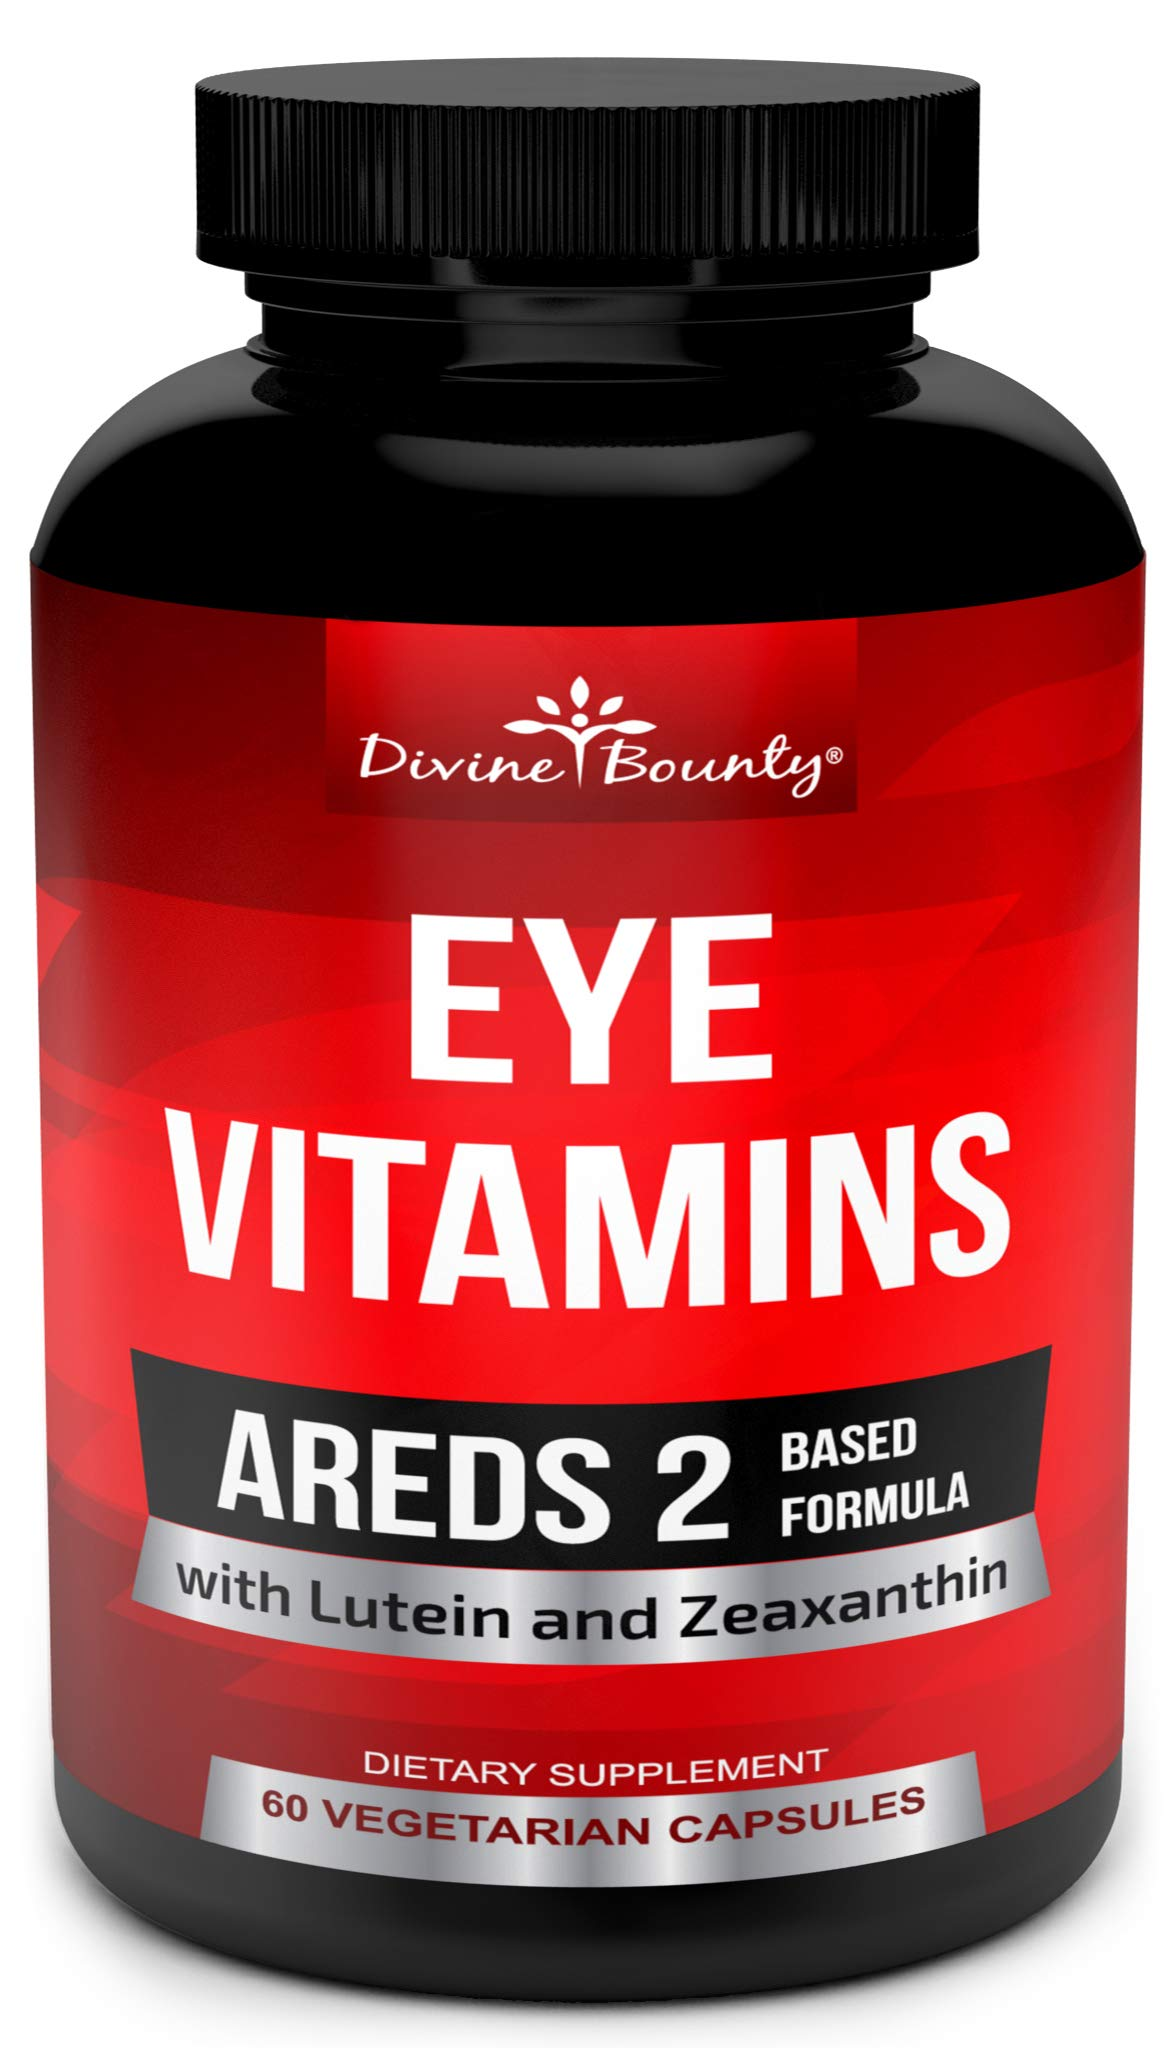 AREDS 2 Eye Vitamins with Lutein and Zeaxanthin Supplements - Clinically Proven for Macular Degeneration, Eye Care, Eye Health - Areds2 Formula for Adults - 60 Vegetarian Capsules by Divine Bounty